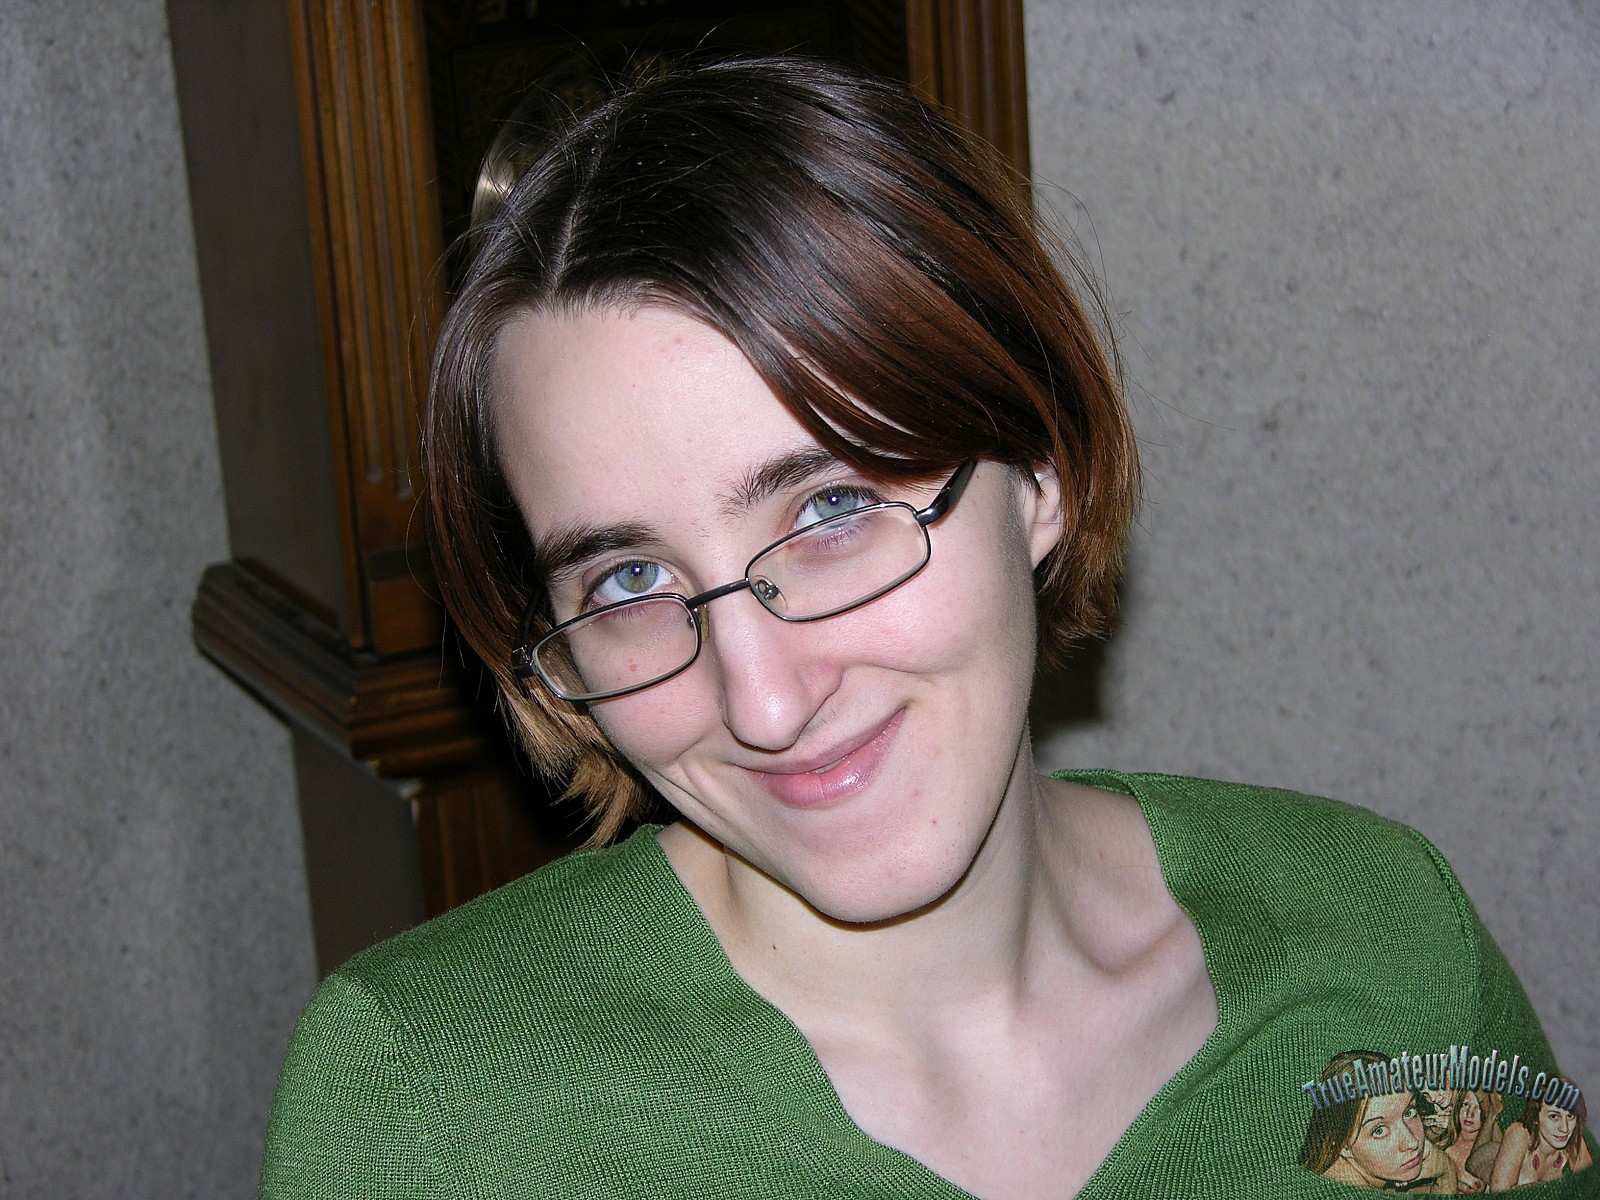 Nude with ugly girl glasses